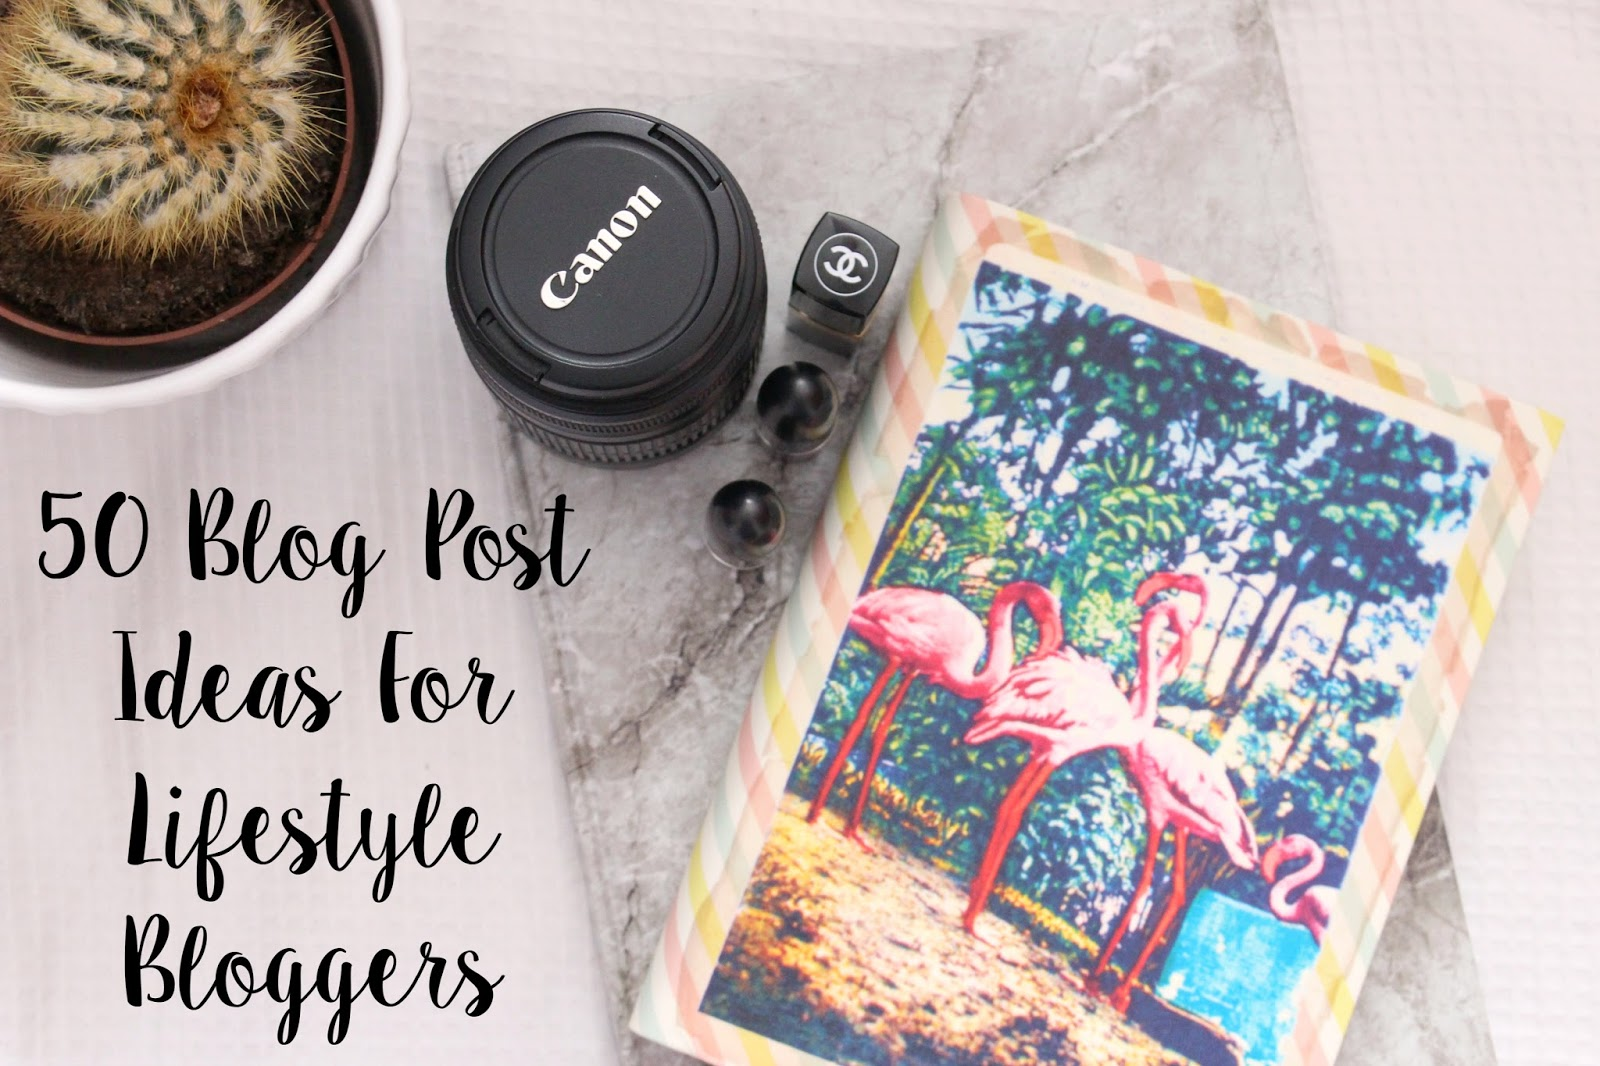 50 Blog Post Ideas For Lifestyle Bloggers UK